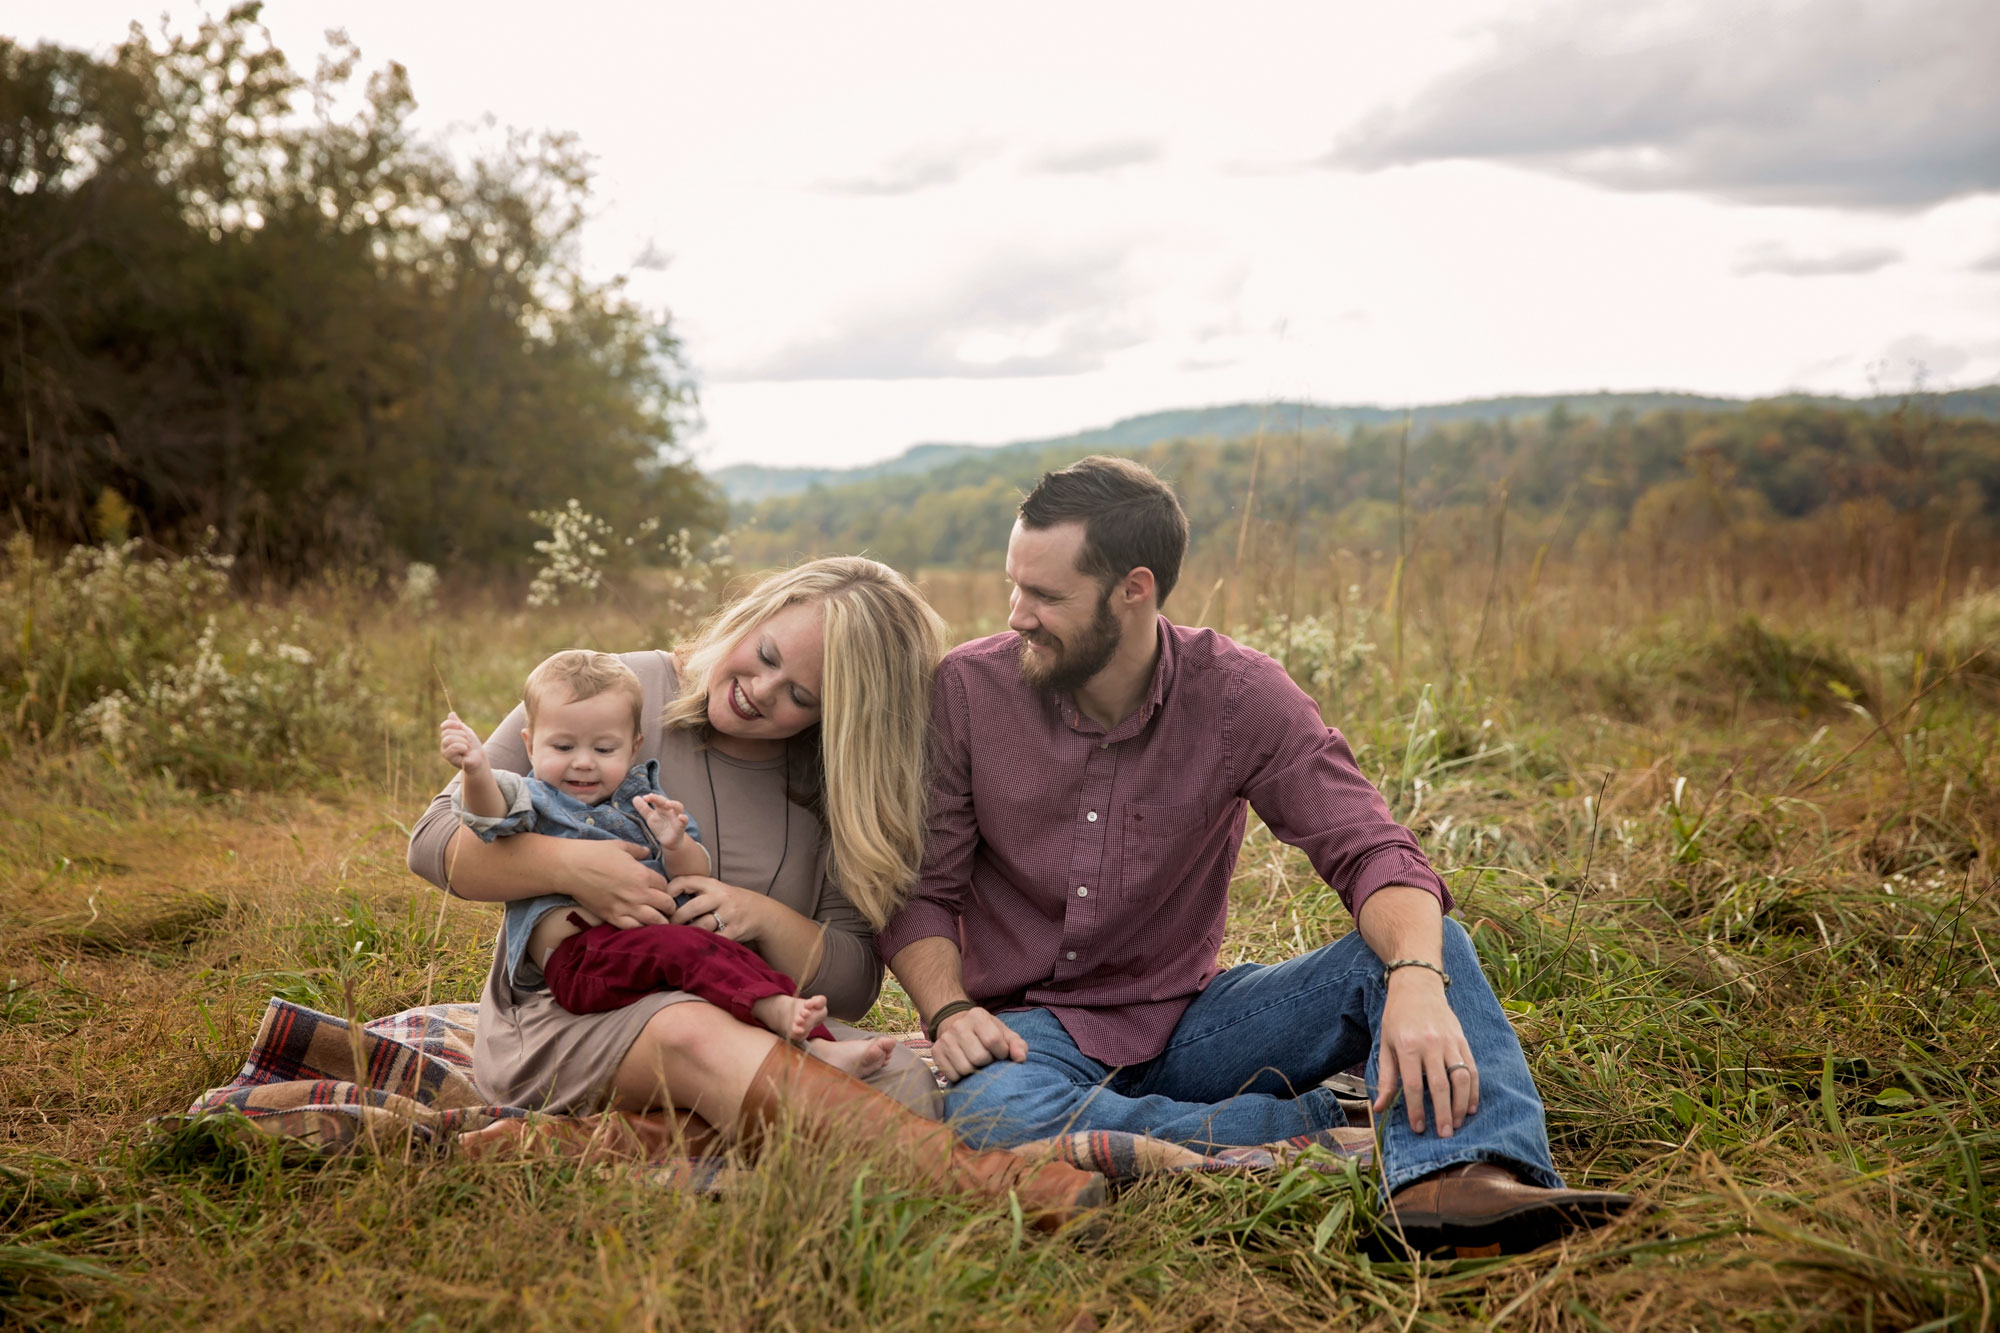 gatlinburg-photographer-family-smiling-in-grass.jpg